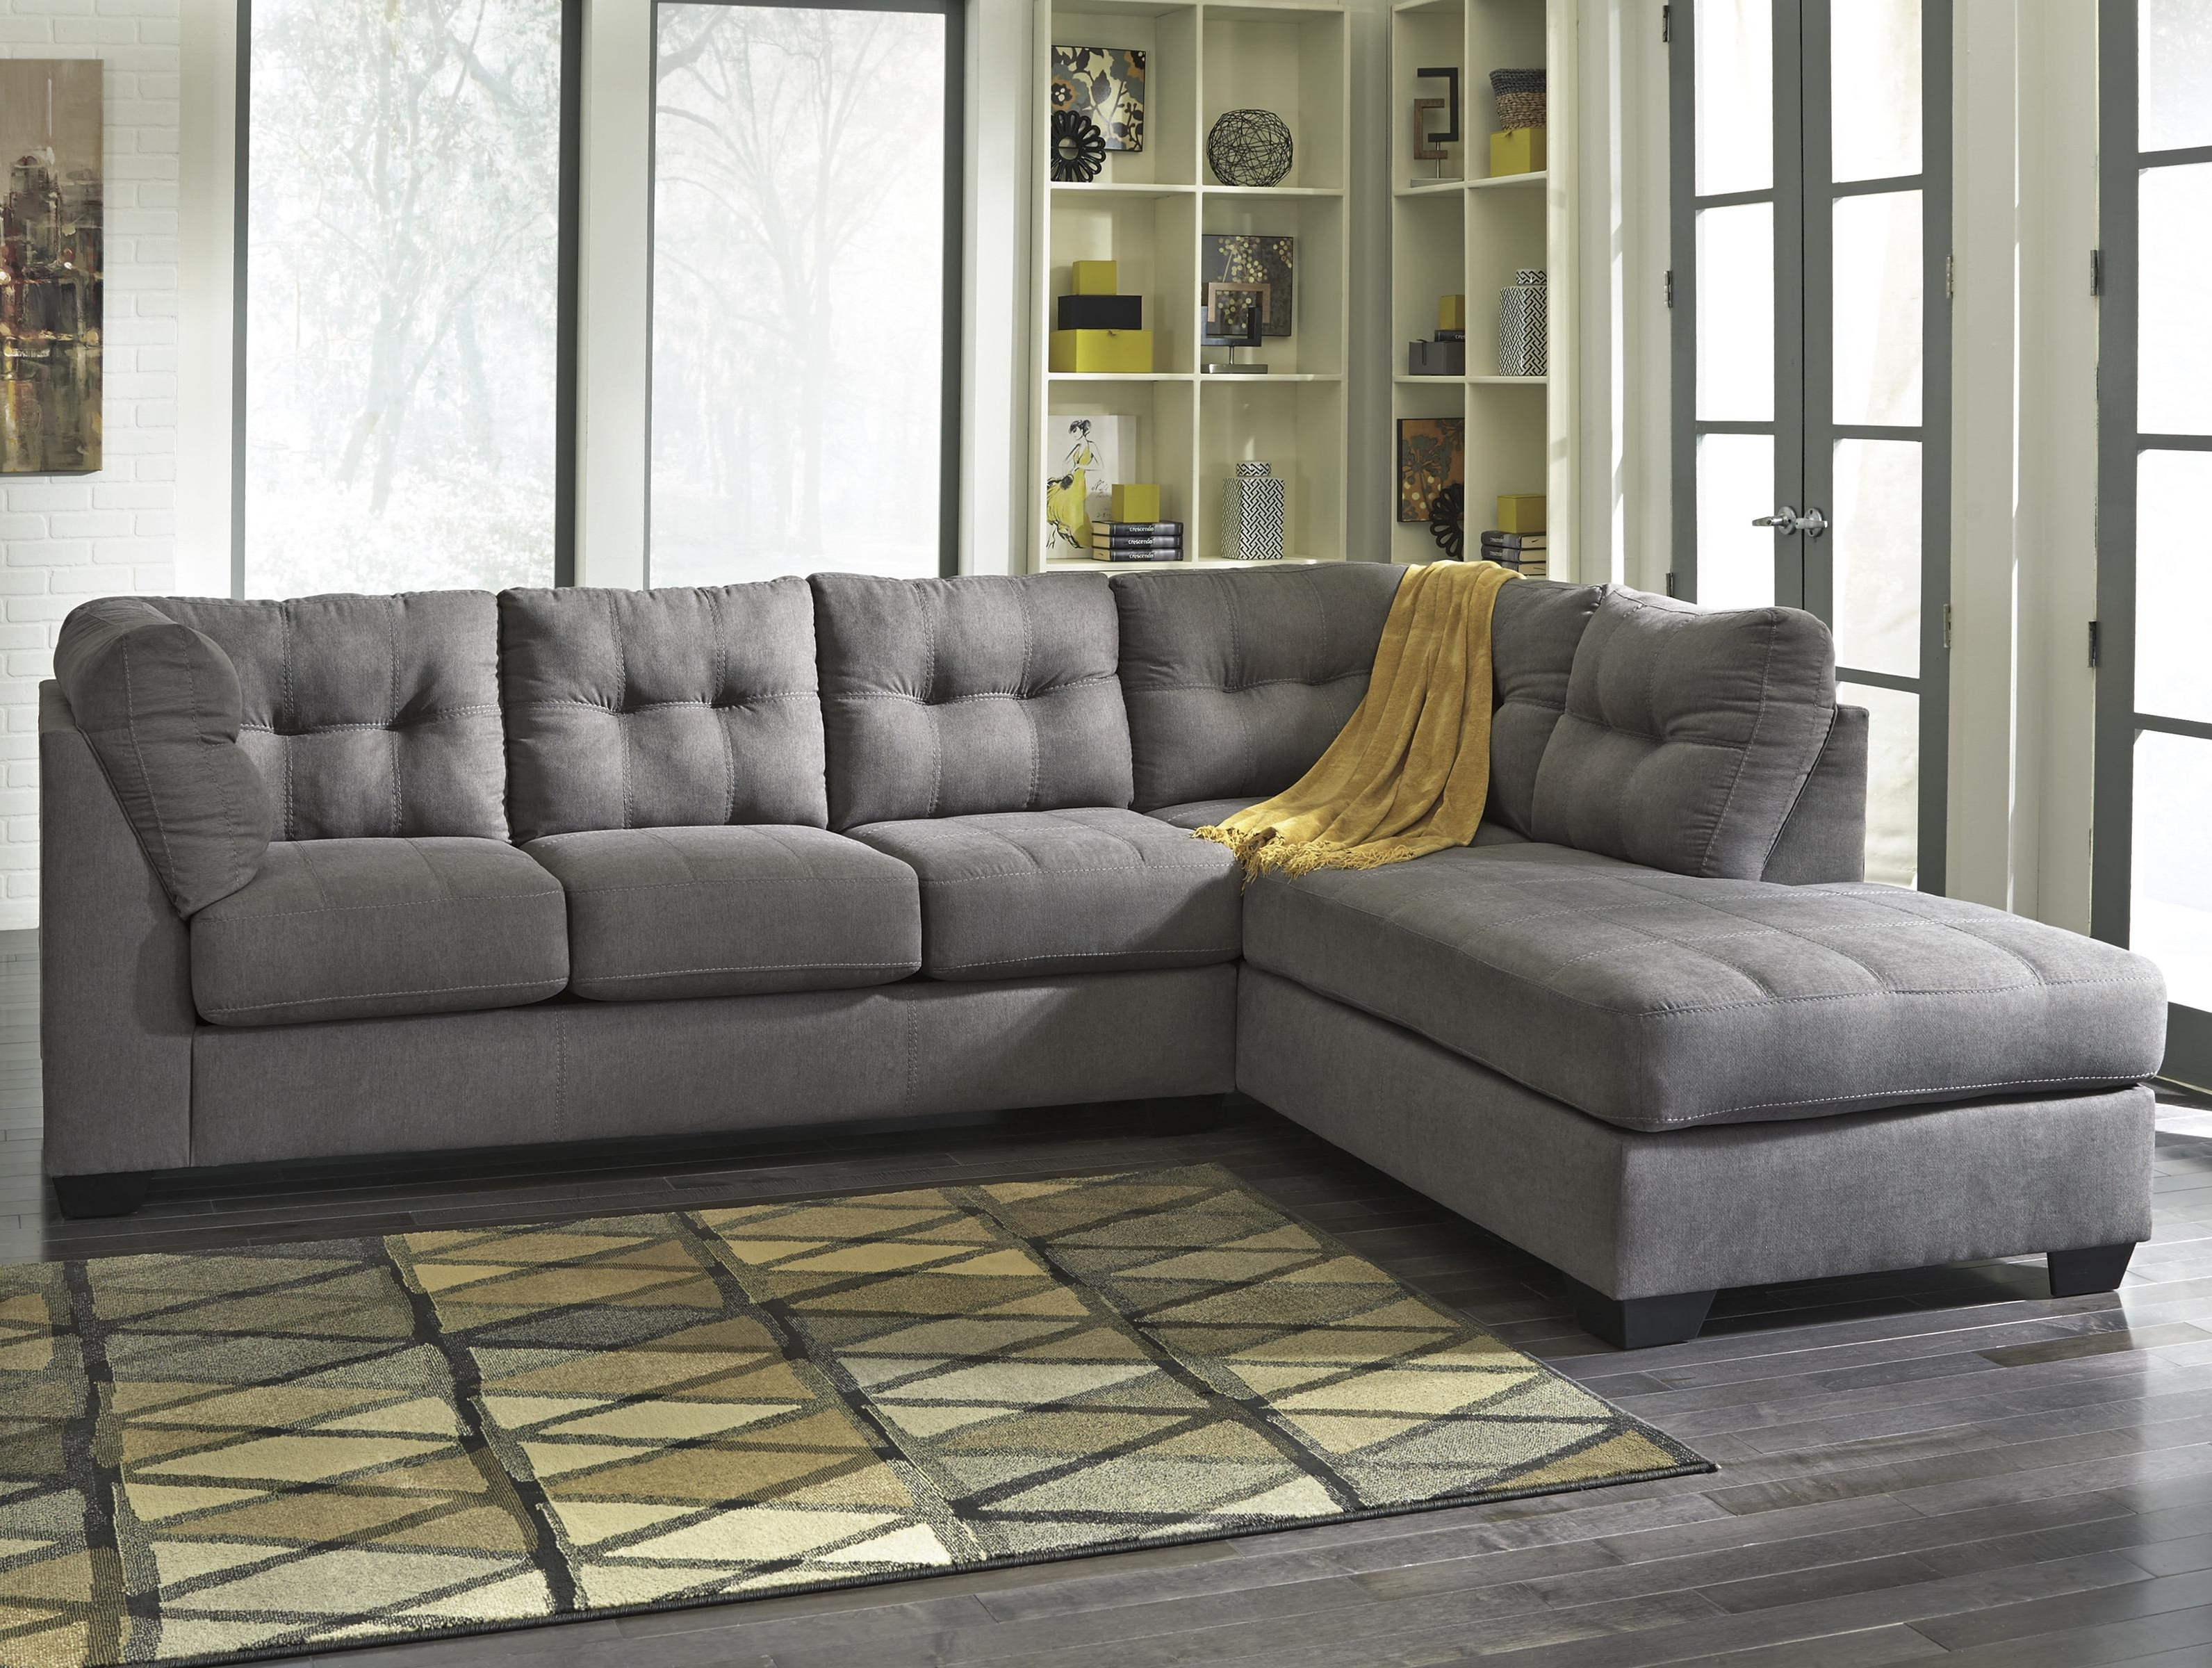 Well Known Benchcraftashley Maier – Charcoal 2 Piece Sectional With Left Within Ashley Chaise Sofas (View 4 of 15)